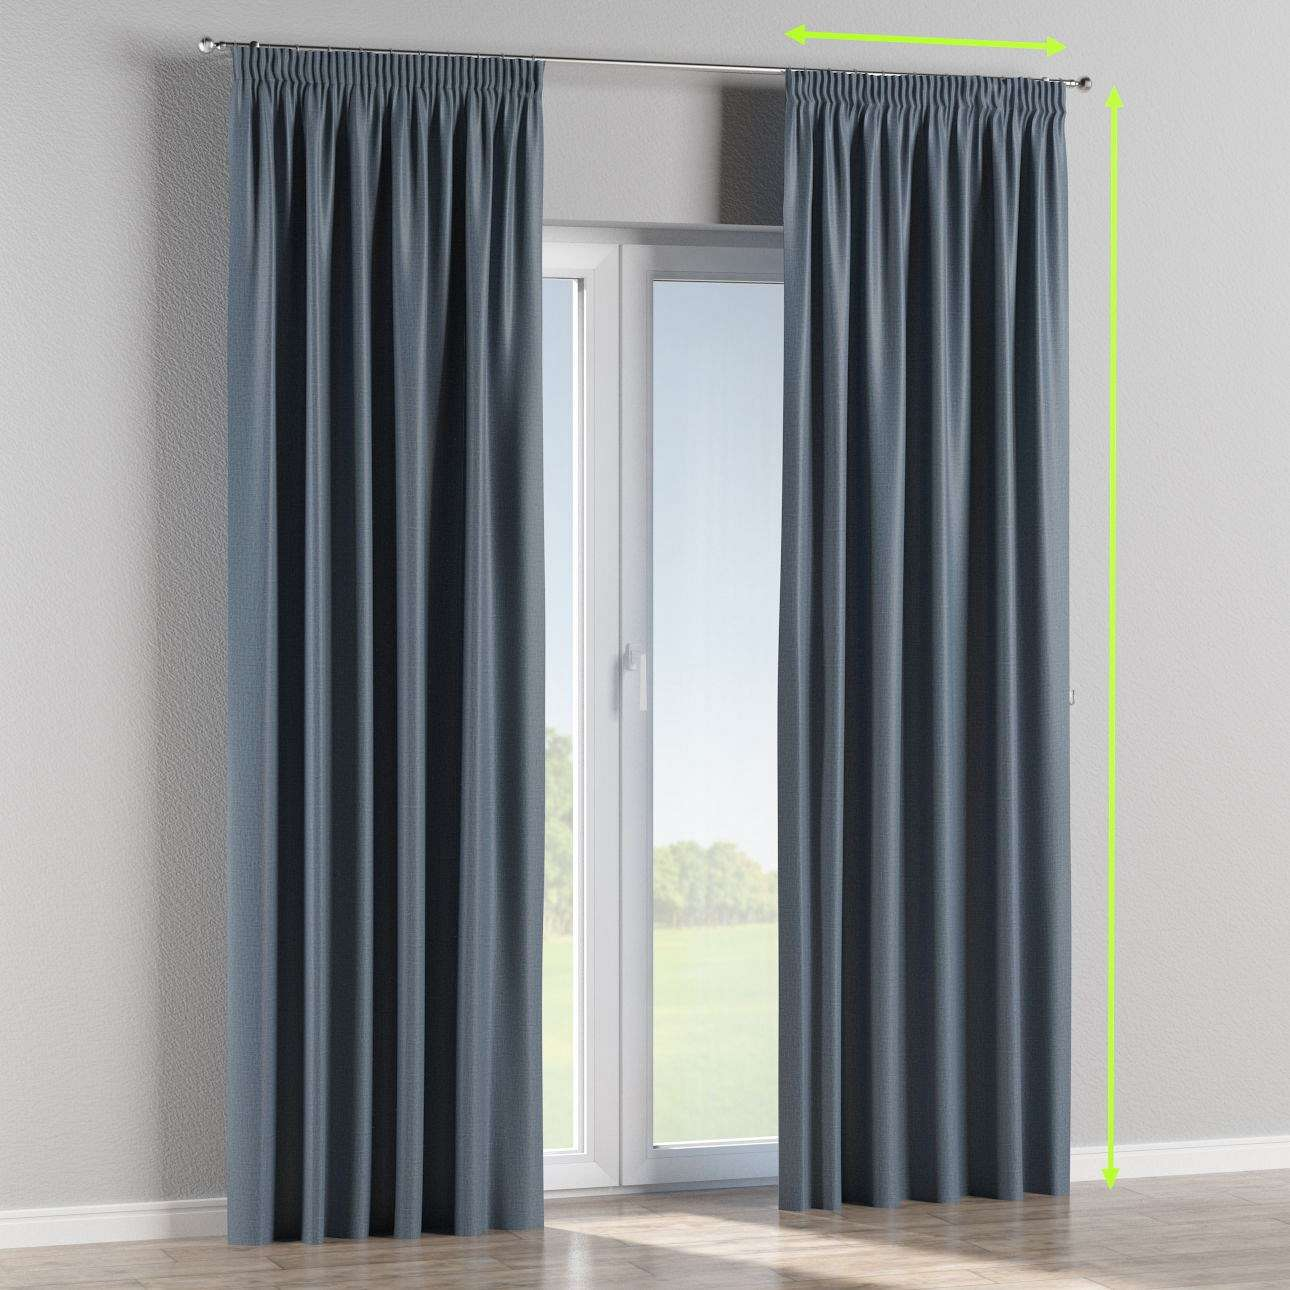 Pencil pleat curtains in collection Blackout, fabric: 269-67